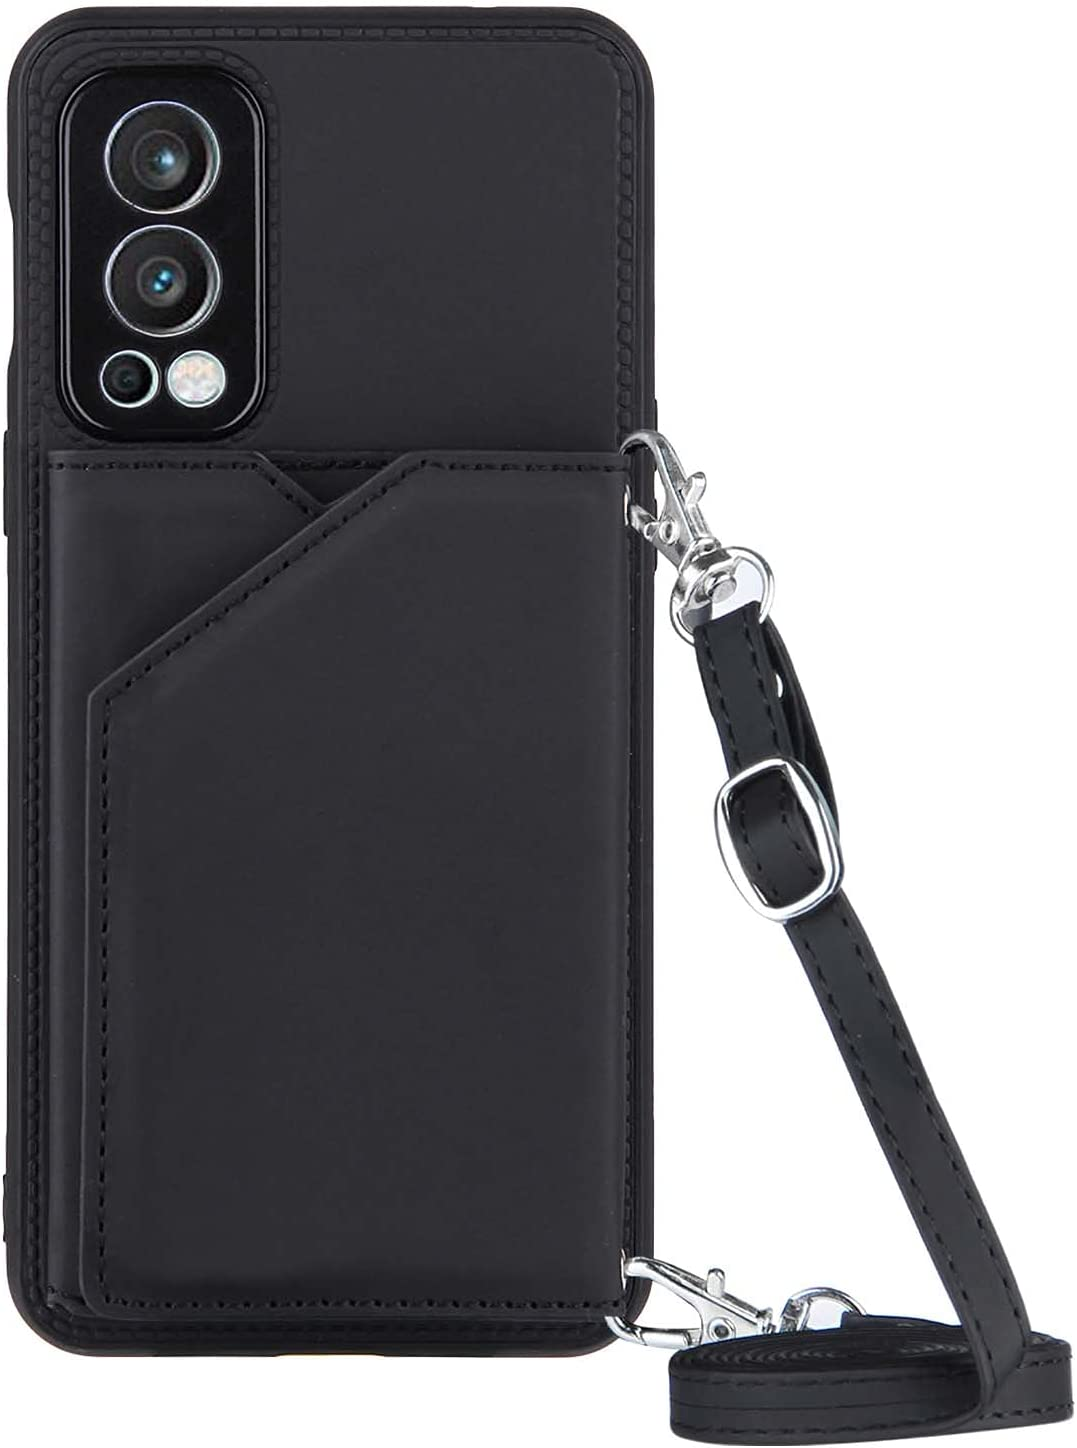 Nord 2 Shoulder Strap Case for OnePlus Nord 2 Lanyard Wallet Case, Cross-Body Girly Bumper Cover (Black)